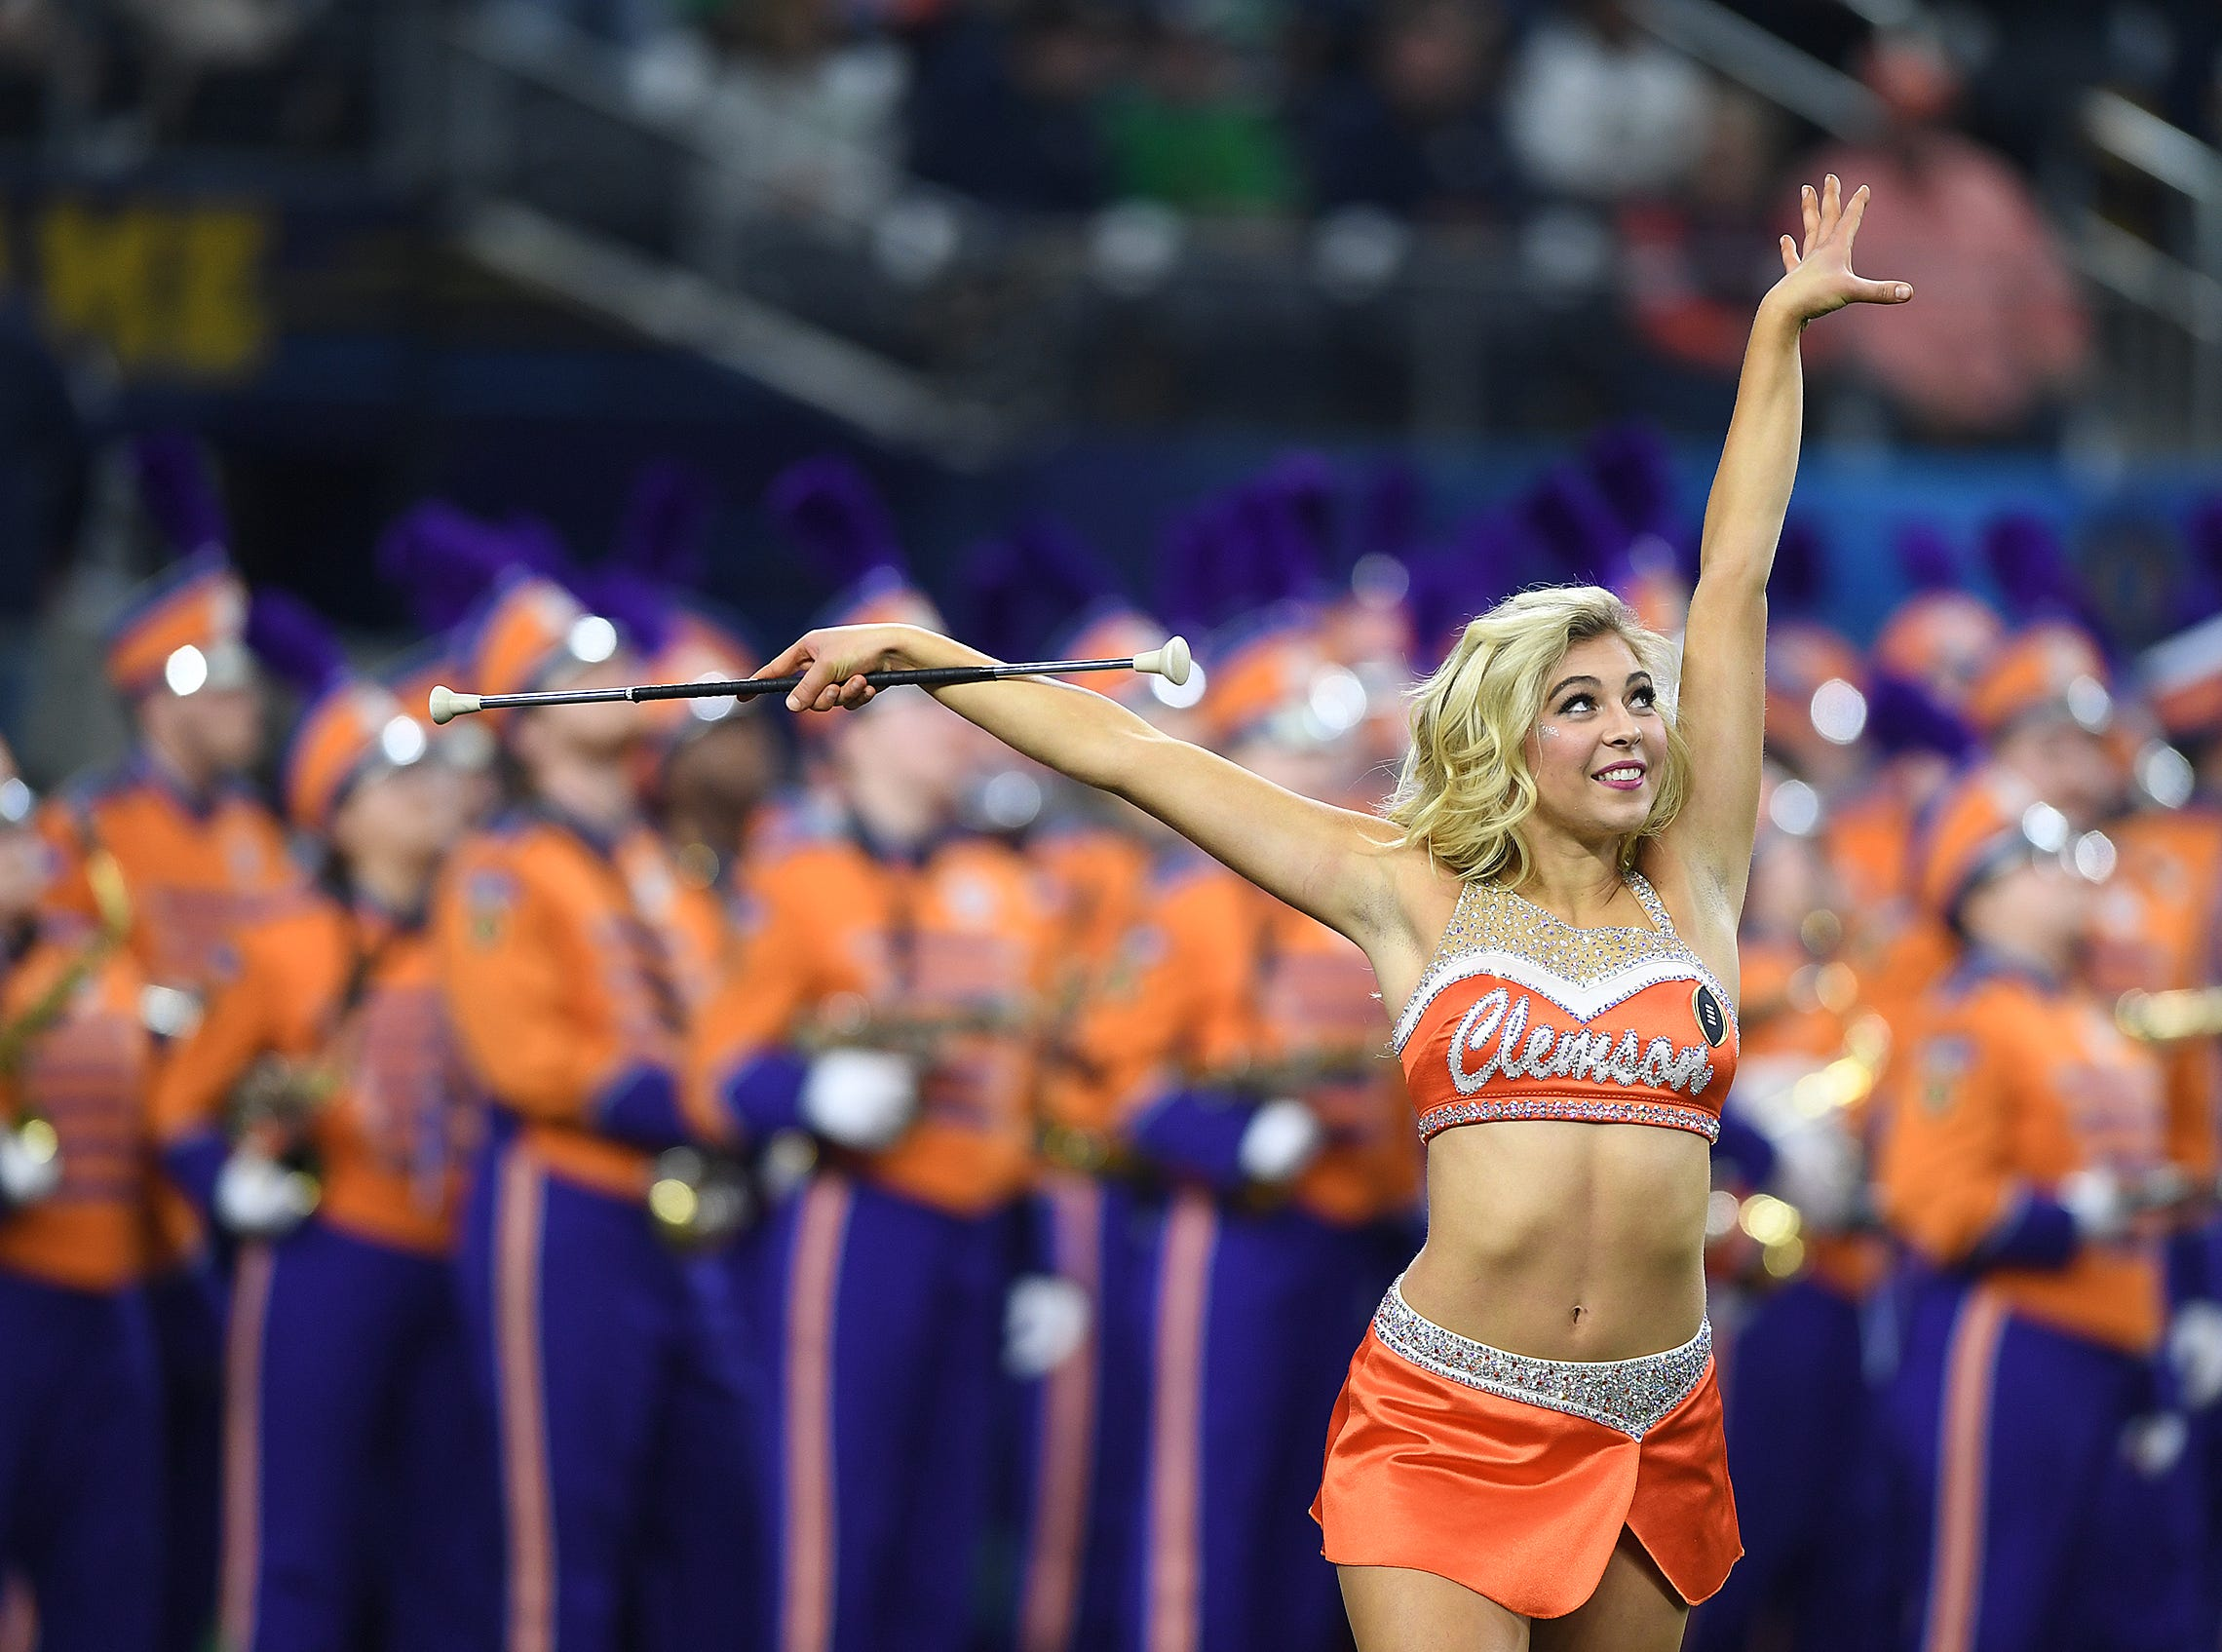 Clemson's band during pregame of the Goodyear Cotton Bowl at AT&T stadium in Arlington, TX Saturday, December 29, 2018.